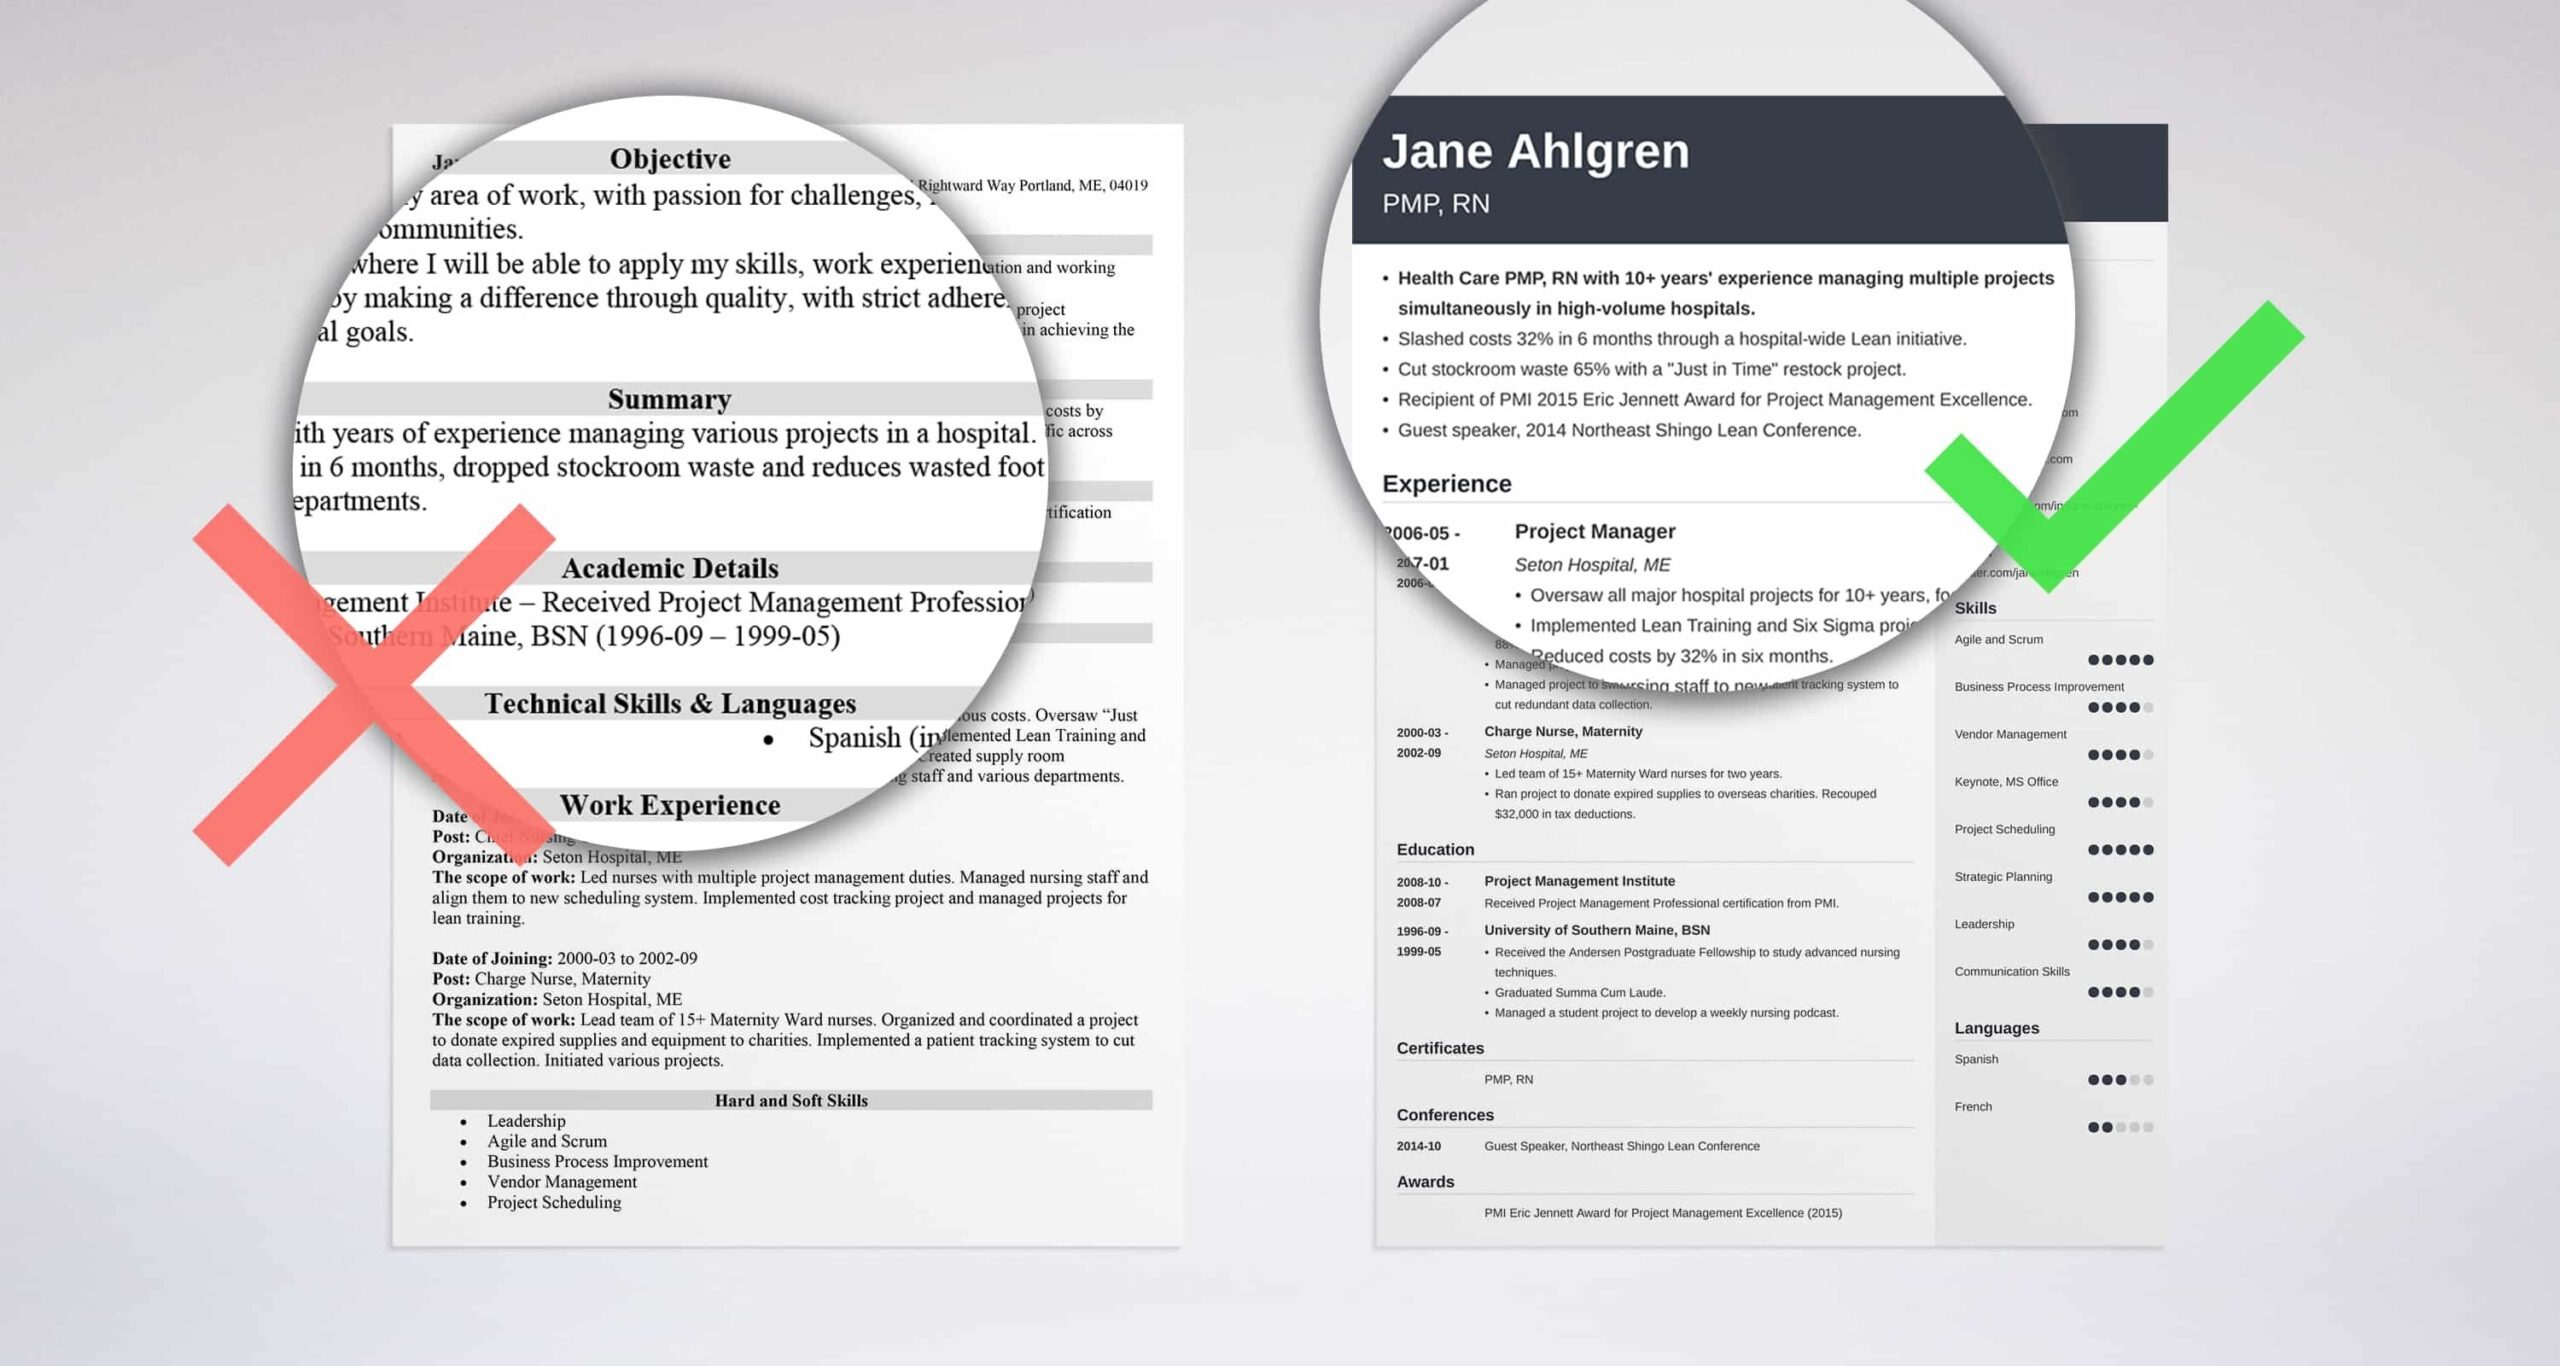 professional resume summary examples statements pre written for stock inventory photoshop Resume Pre Written Summary For Resume